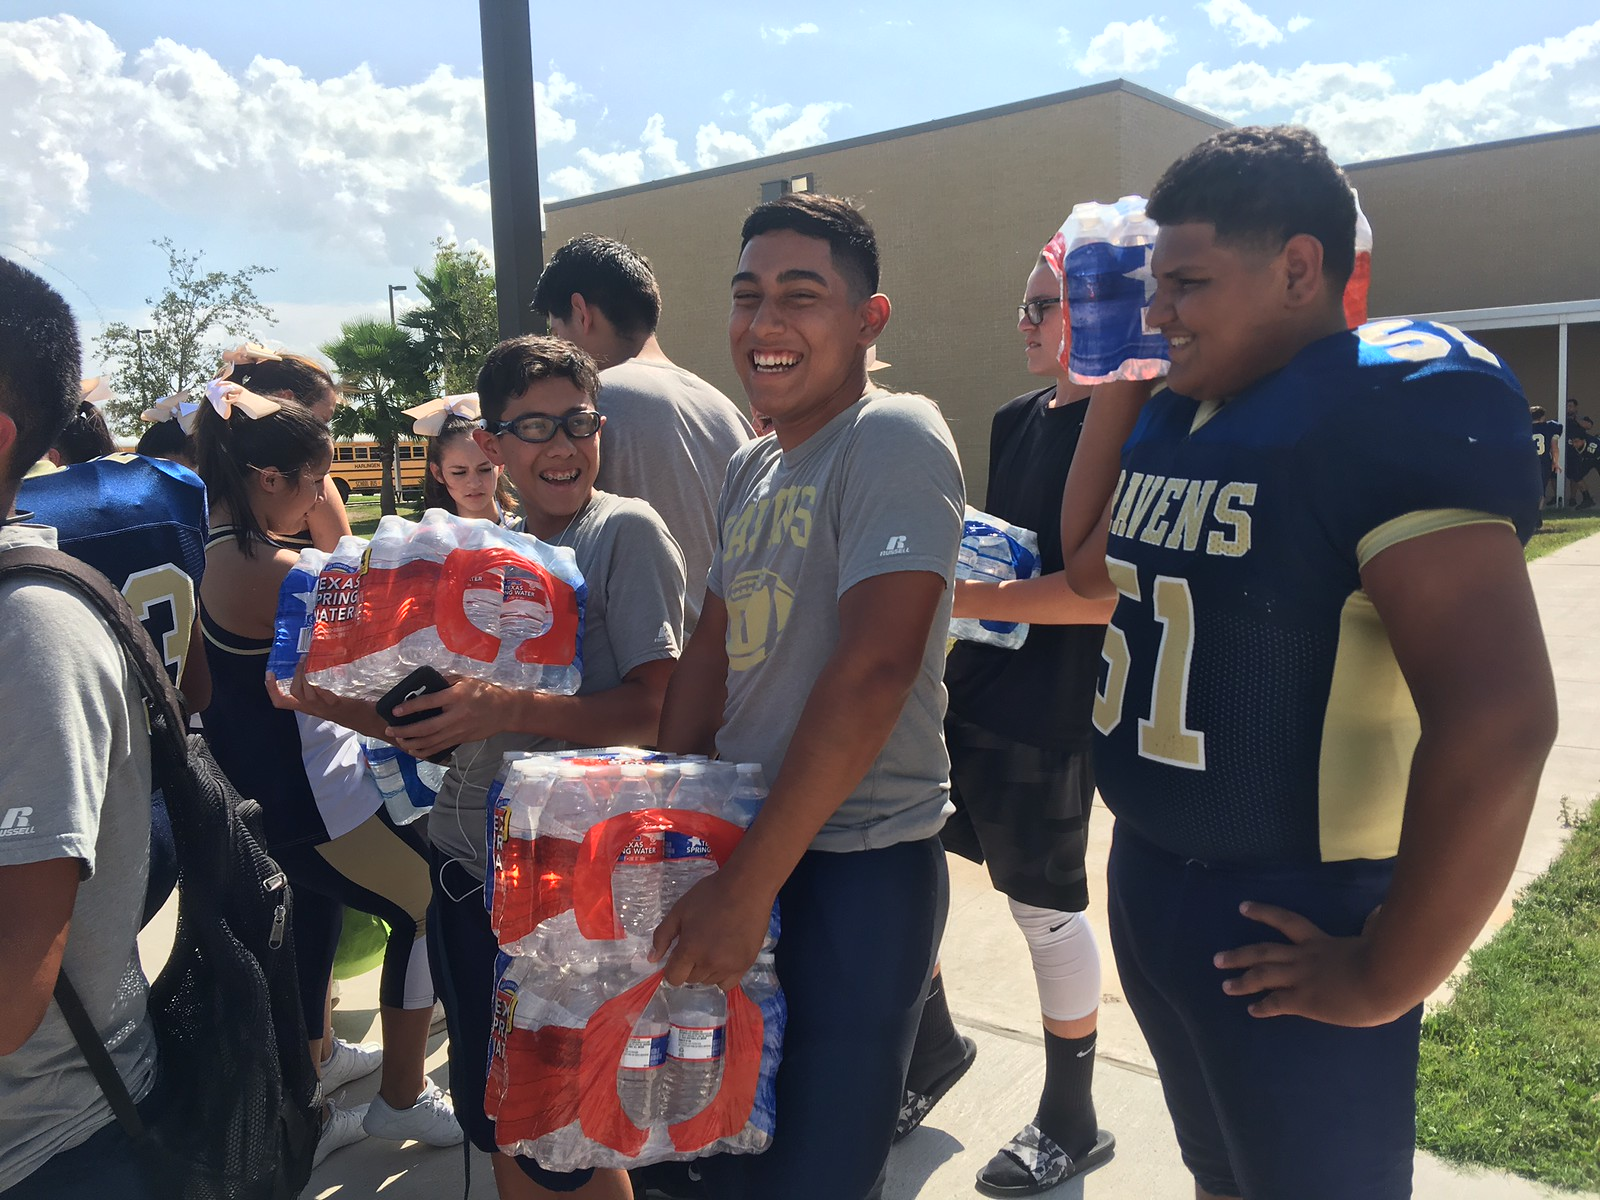 HCISD and Habitat for Humanity spring to action to help hurricane relief efforts